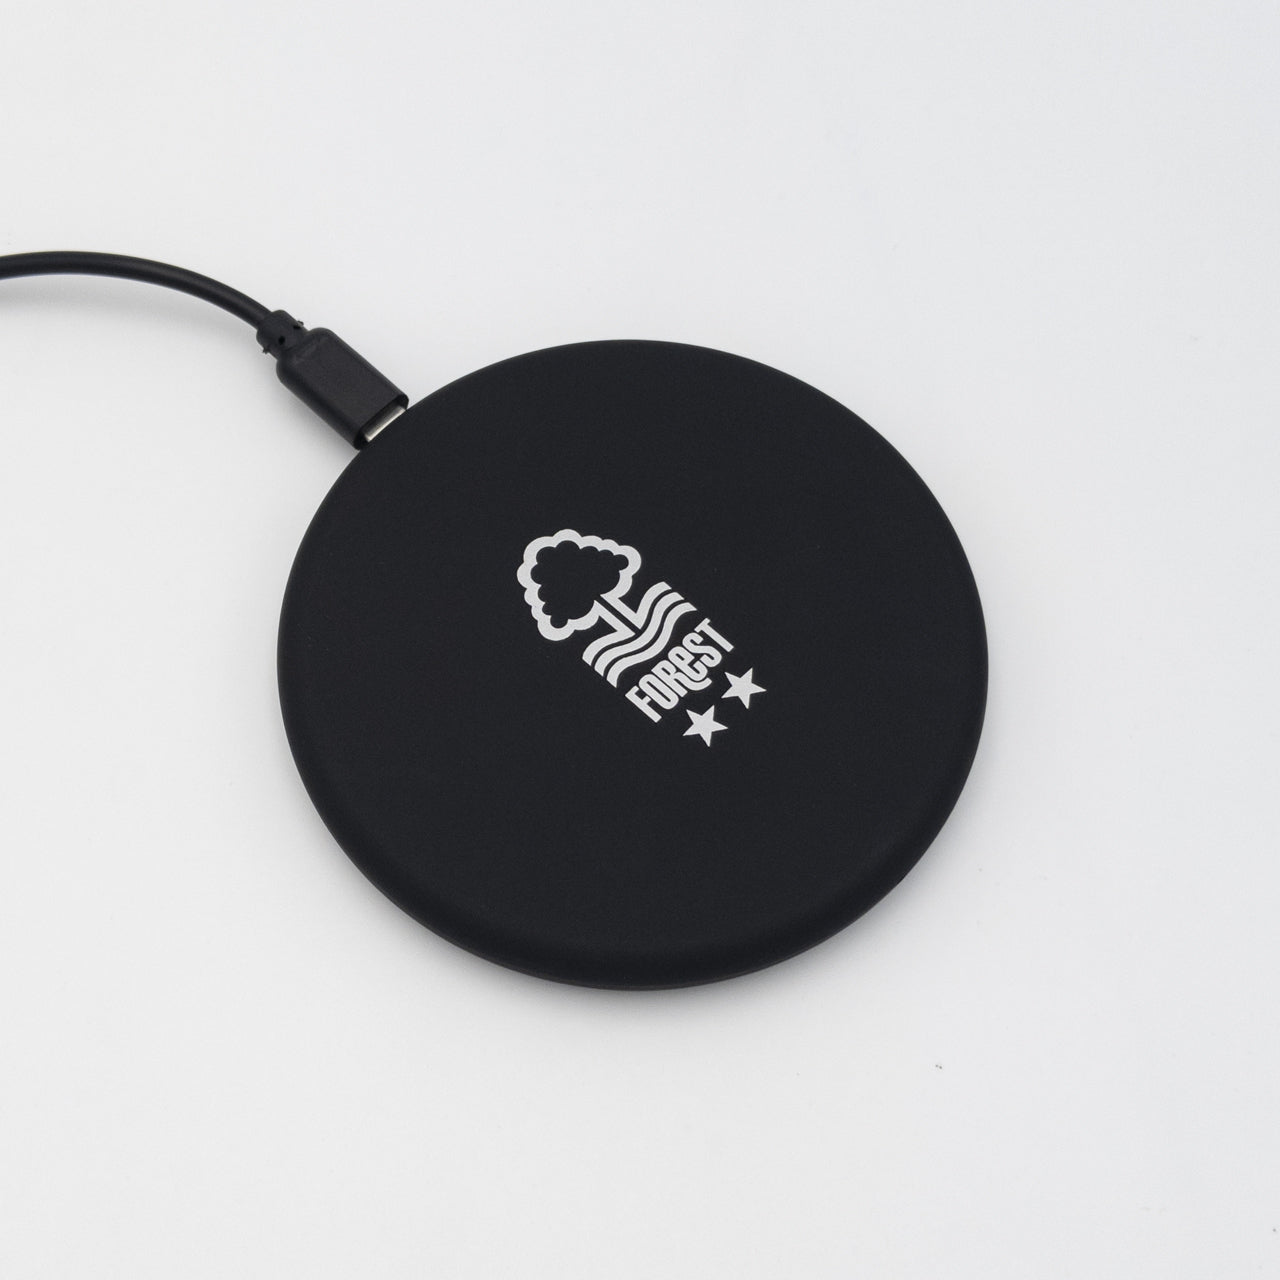 NFFC Wireless Charger